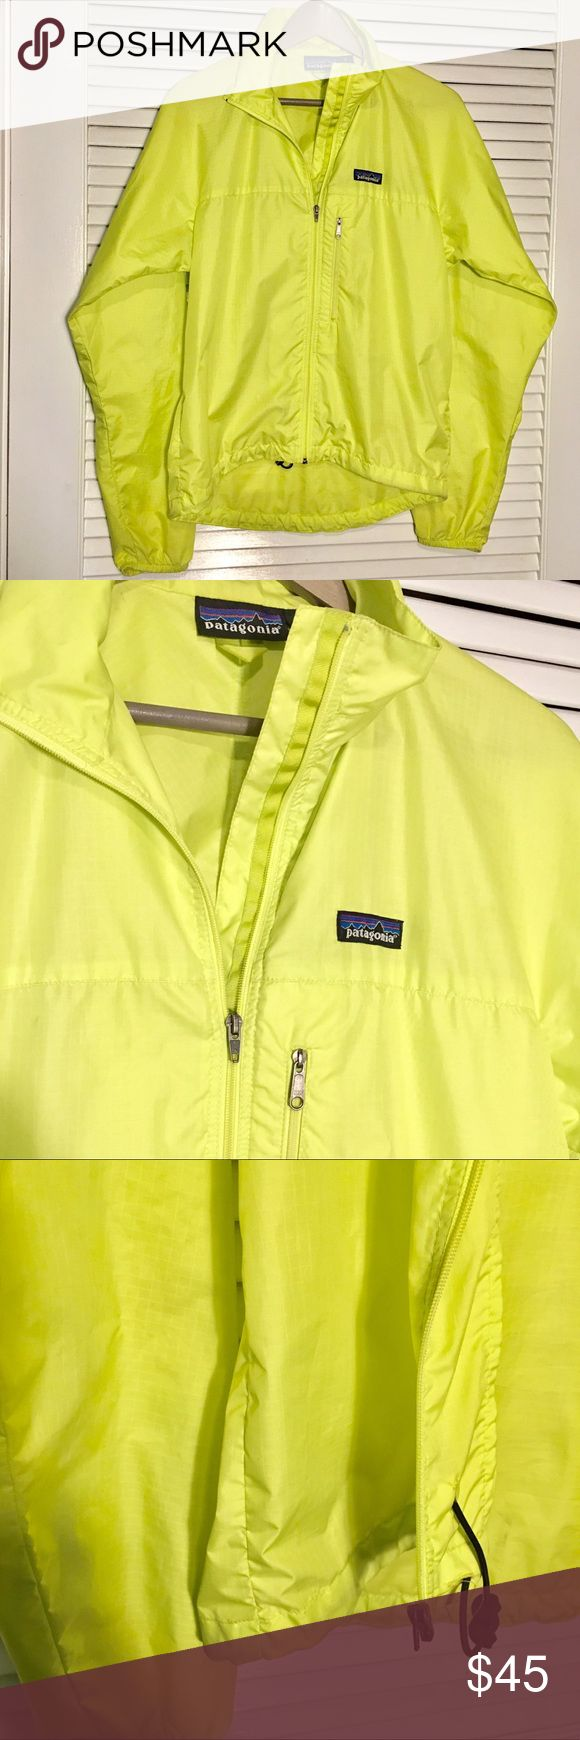 Patagonia Houdini Light Jacket, Yellow Packable Very good